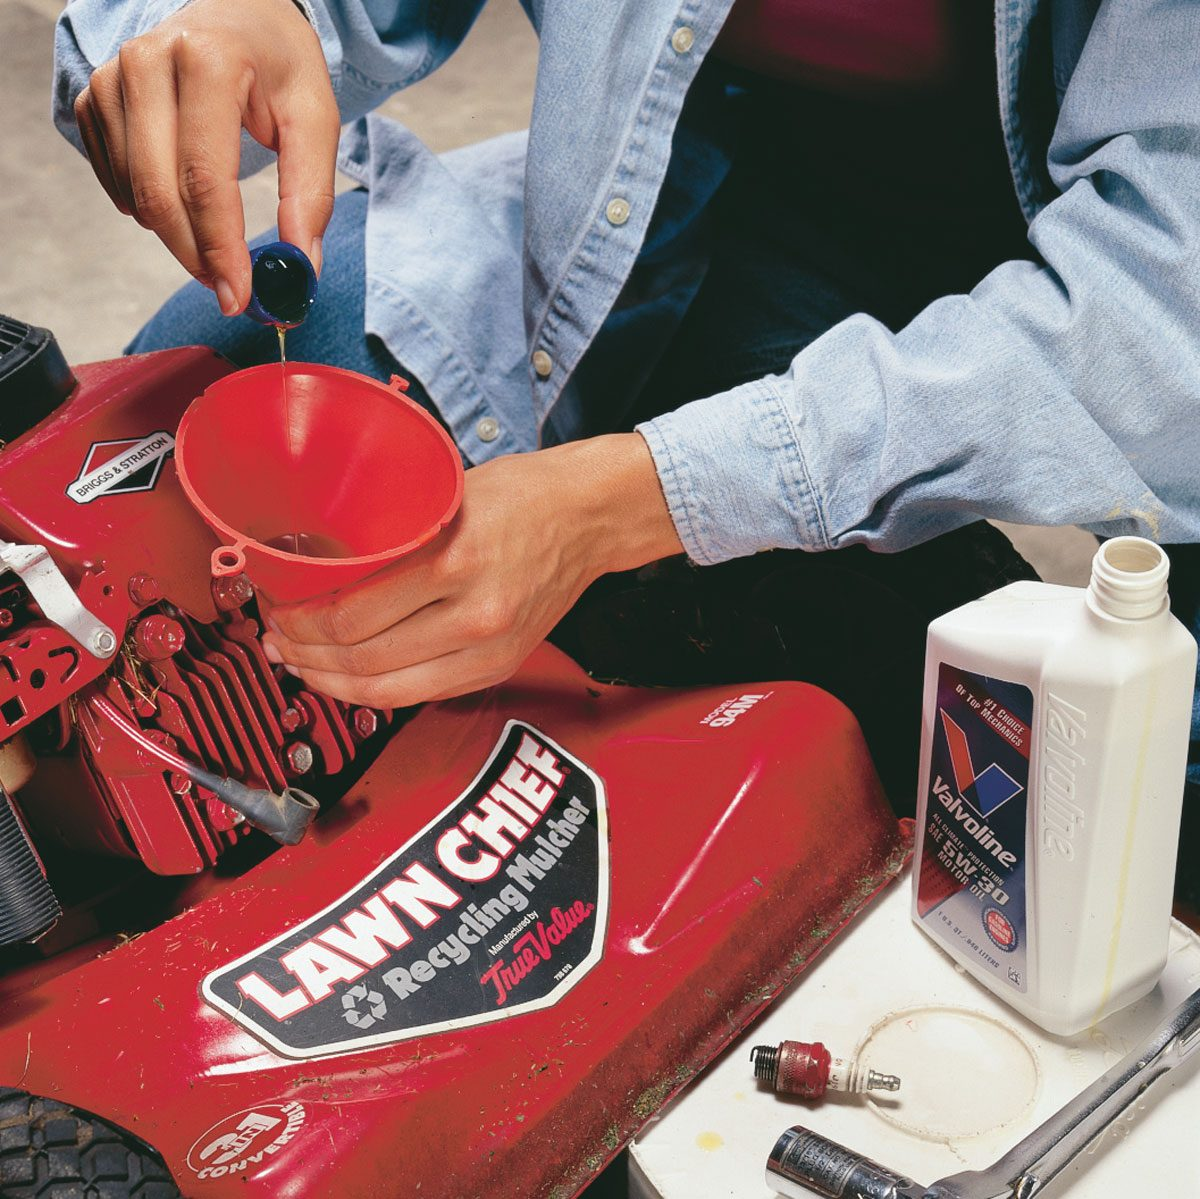 Clean Up Your Lawnmower and Other Yard Tools